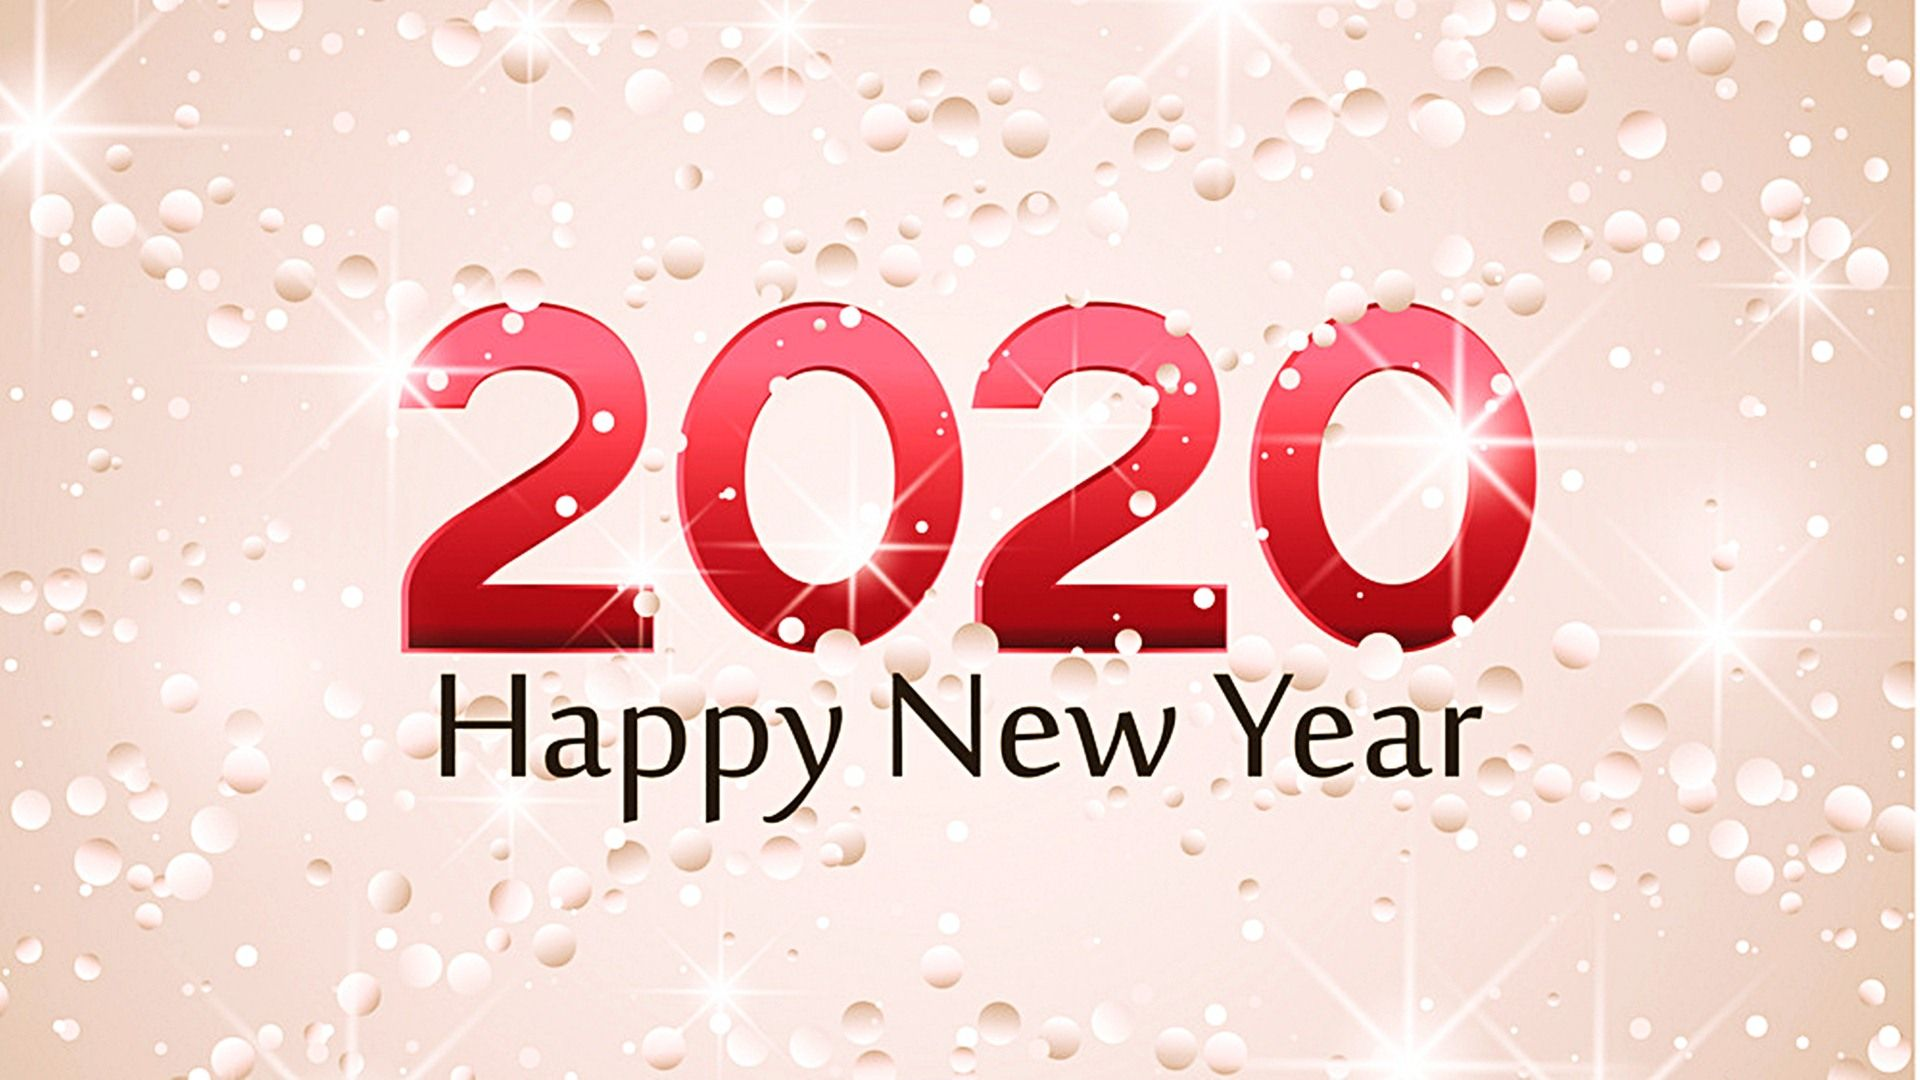 Happy New Year 2020 HD Wallpapers for iPhone